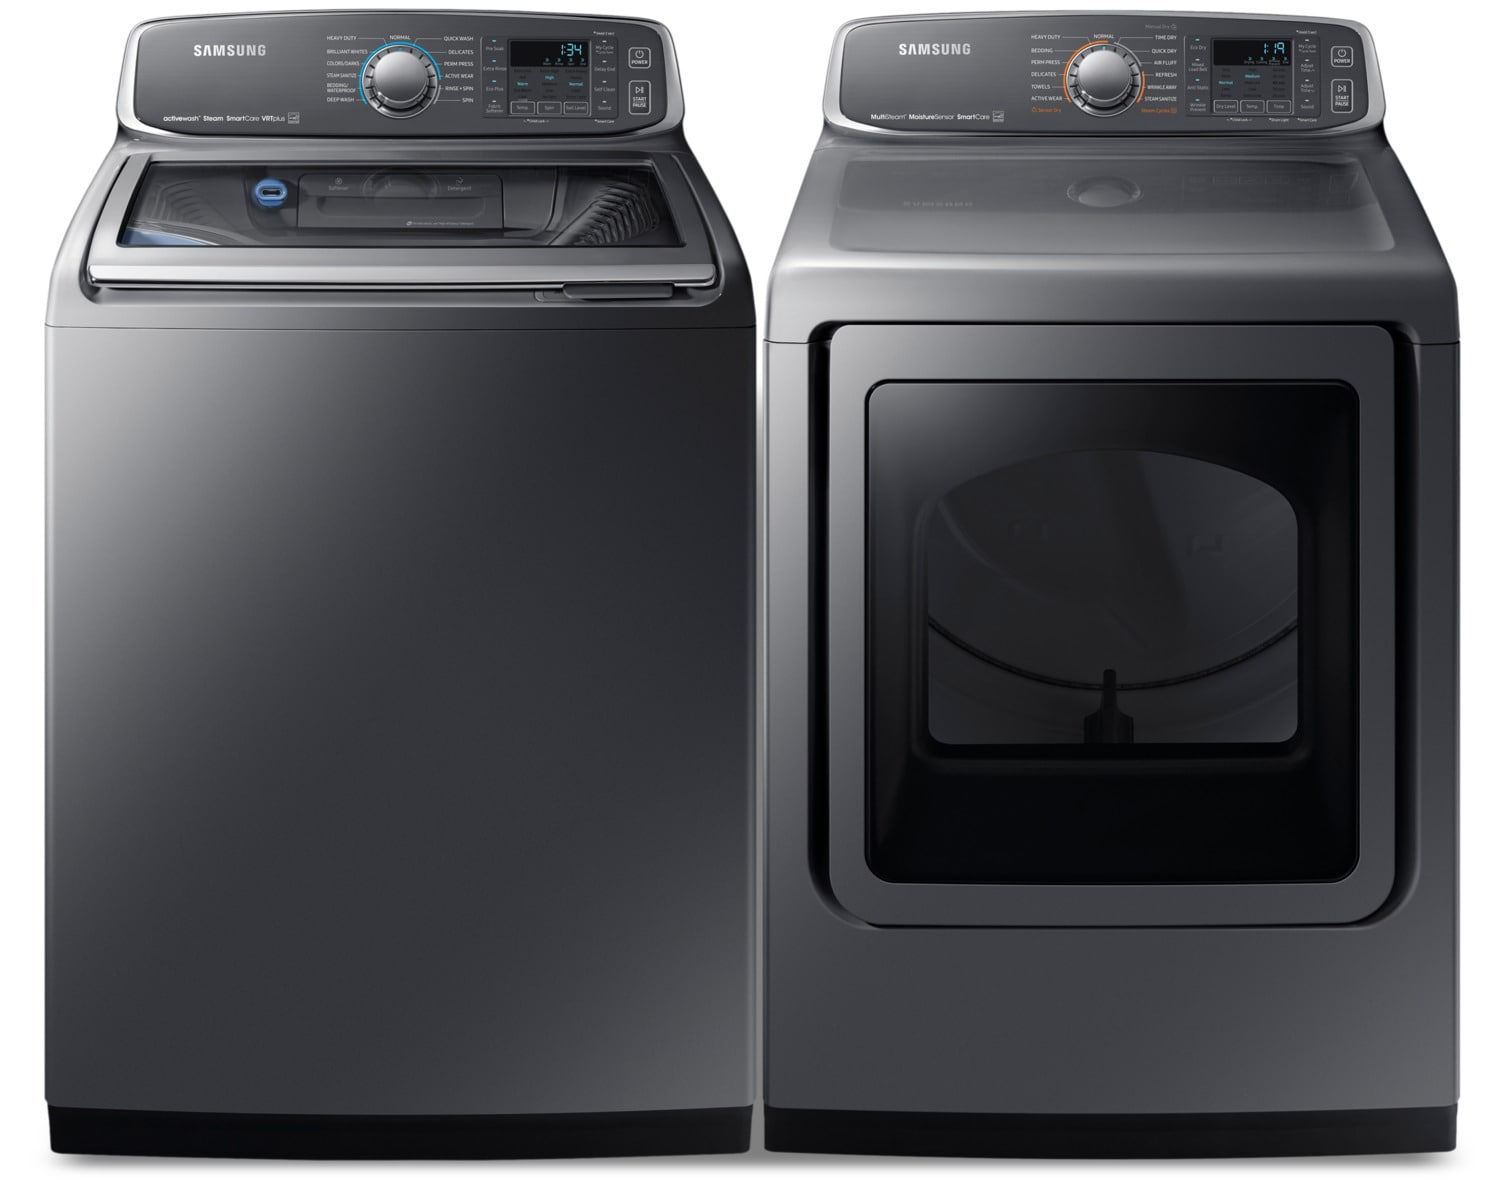 Uncategorized Appliances Kitchener Waterloo washer and dryer pairs leons samsung laundry wa52m7755apa4 dve52m7750pac